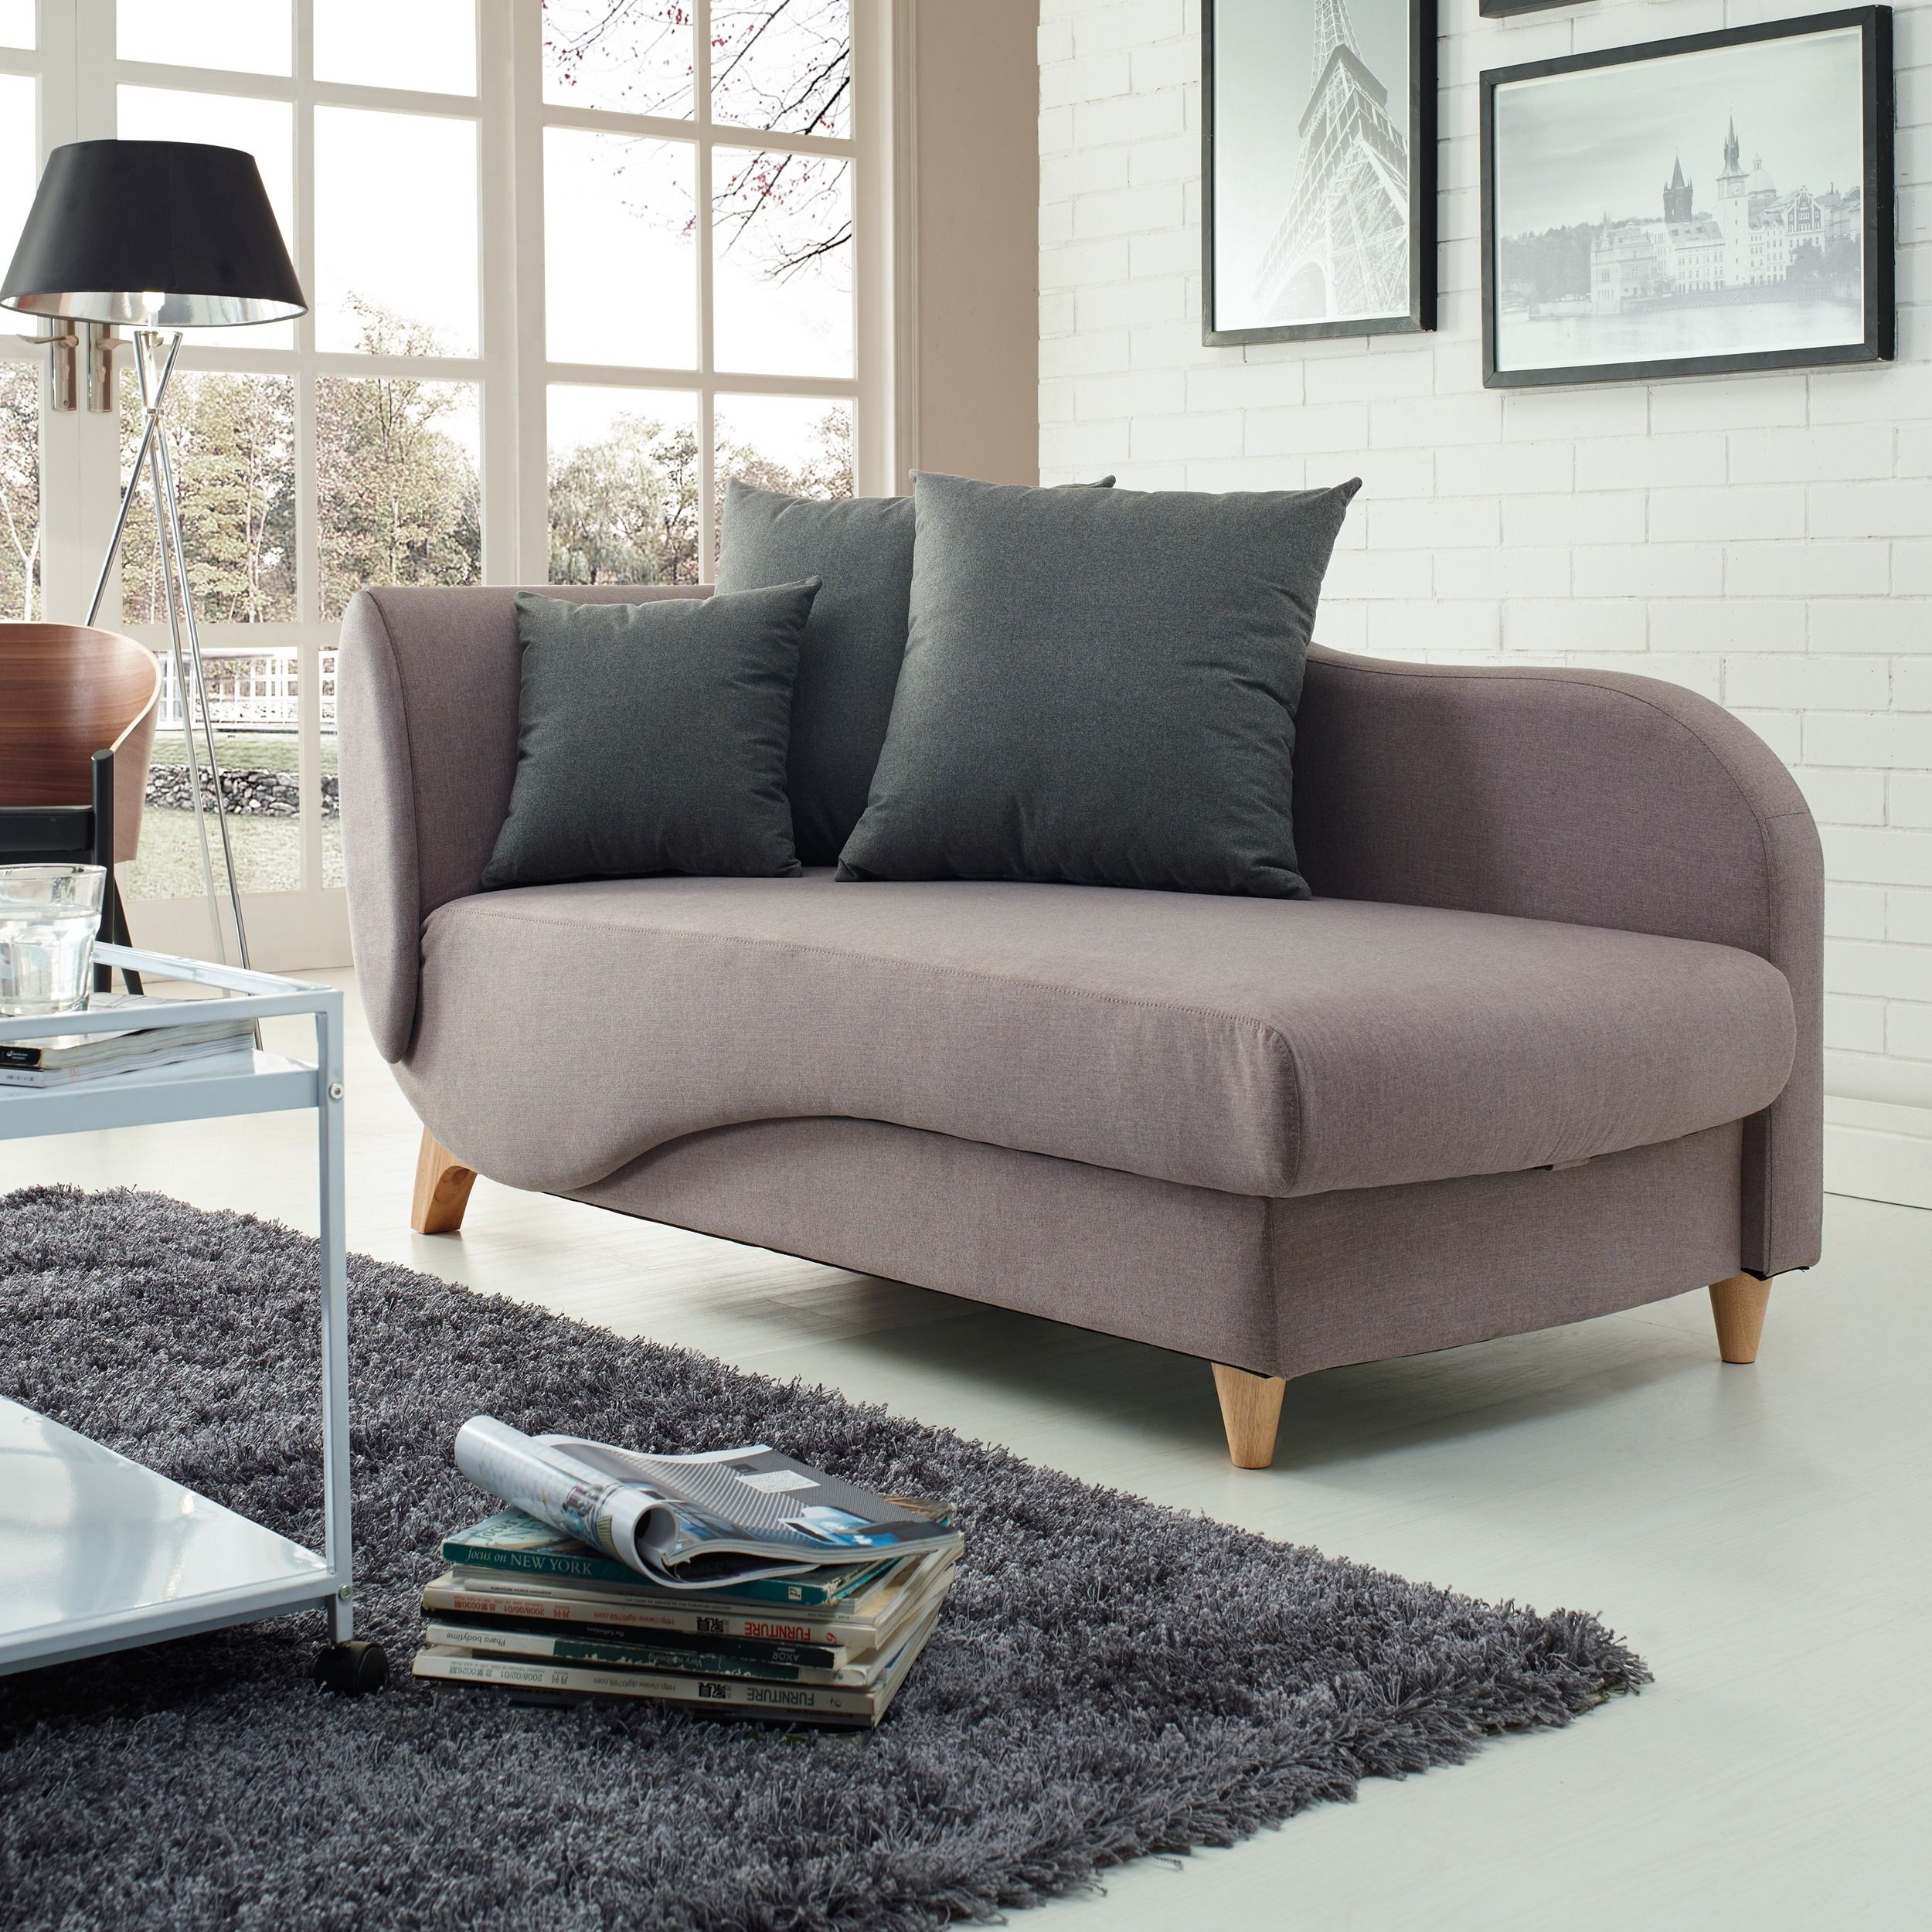 This highly stylish sofa bed bines looks function and highest